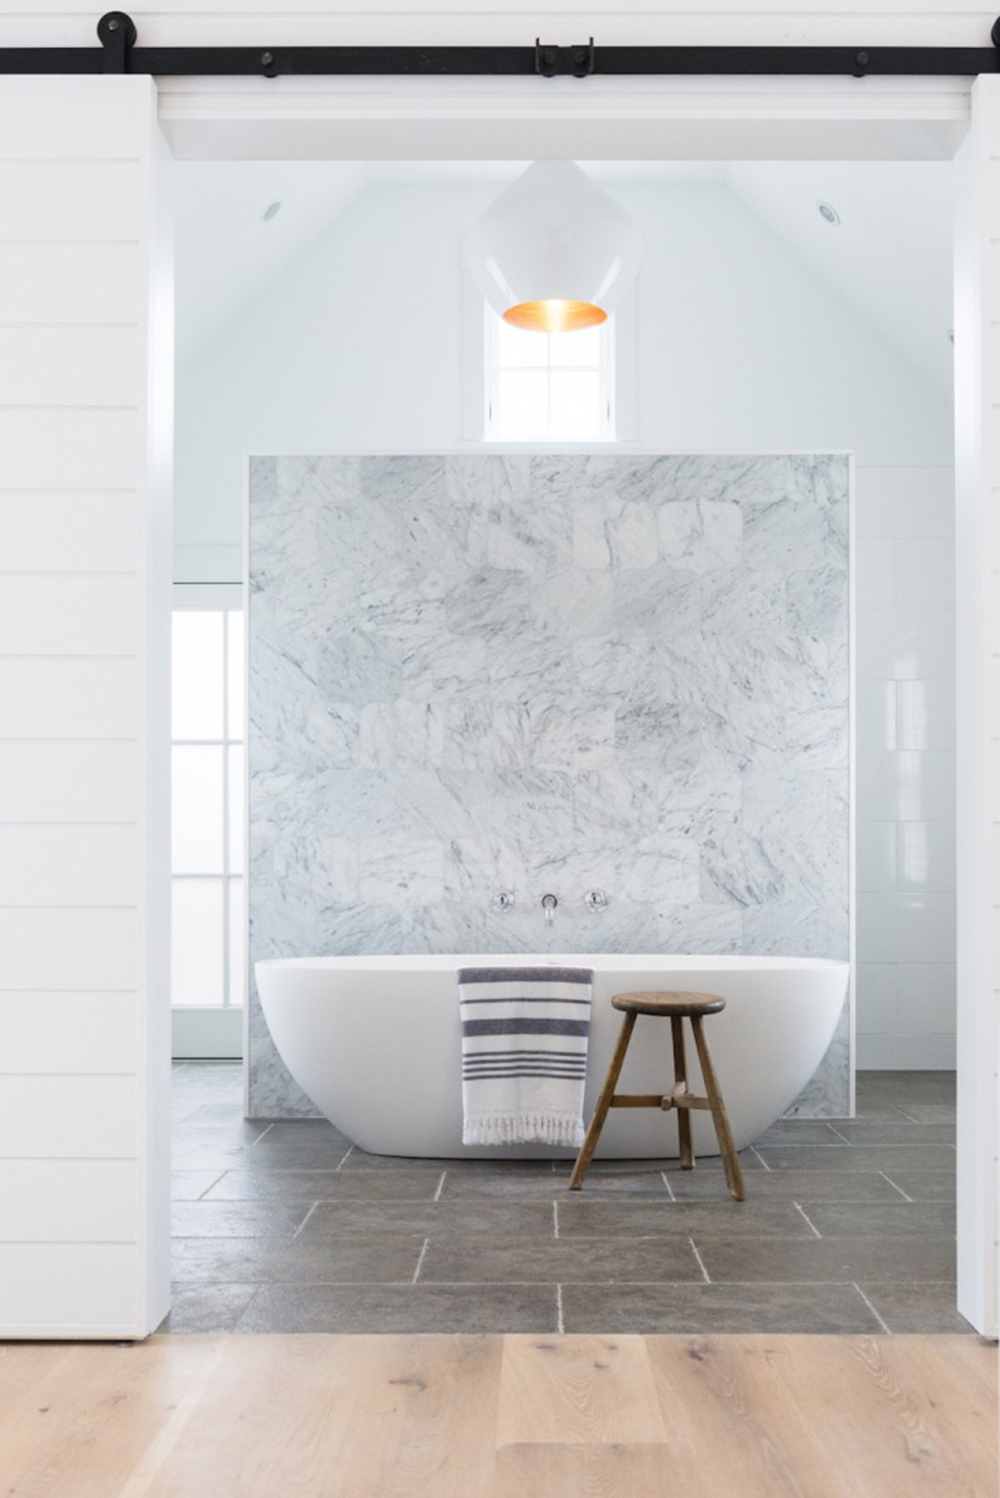 FREE STANDING TUBS by popular home interior design blogger E. Interiors